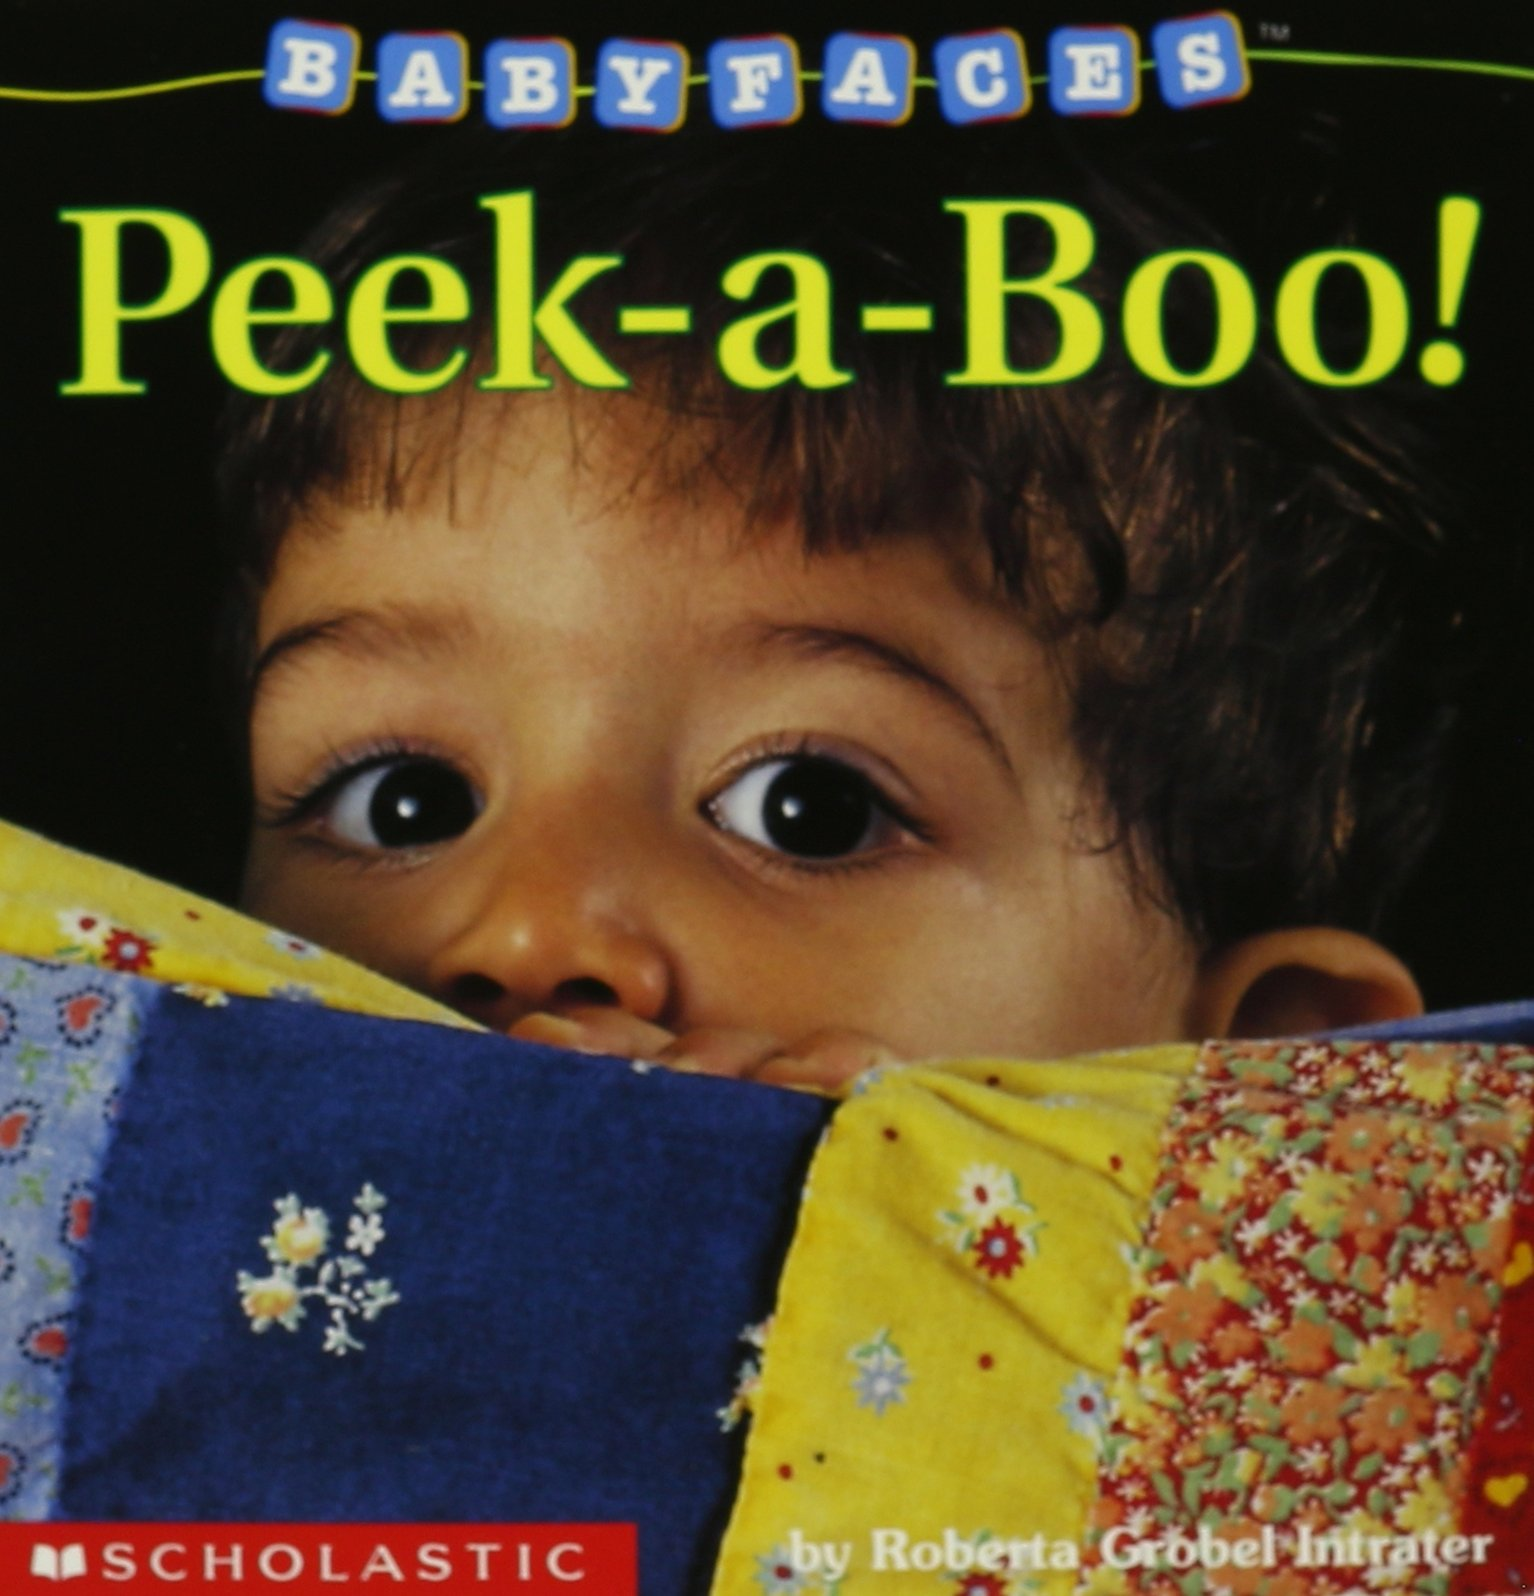 Peek-A-Boo! by Roberta Grobel Intrater - Baby Faces Board Book #01